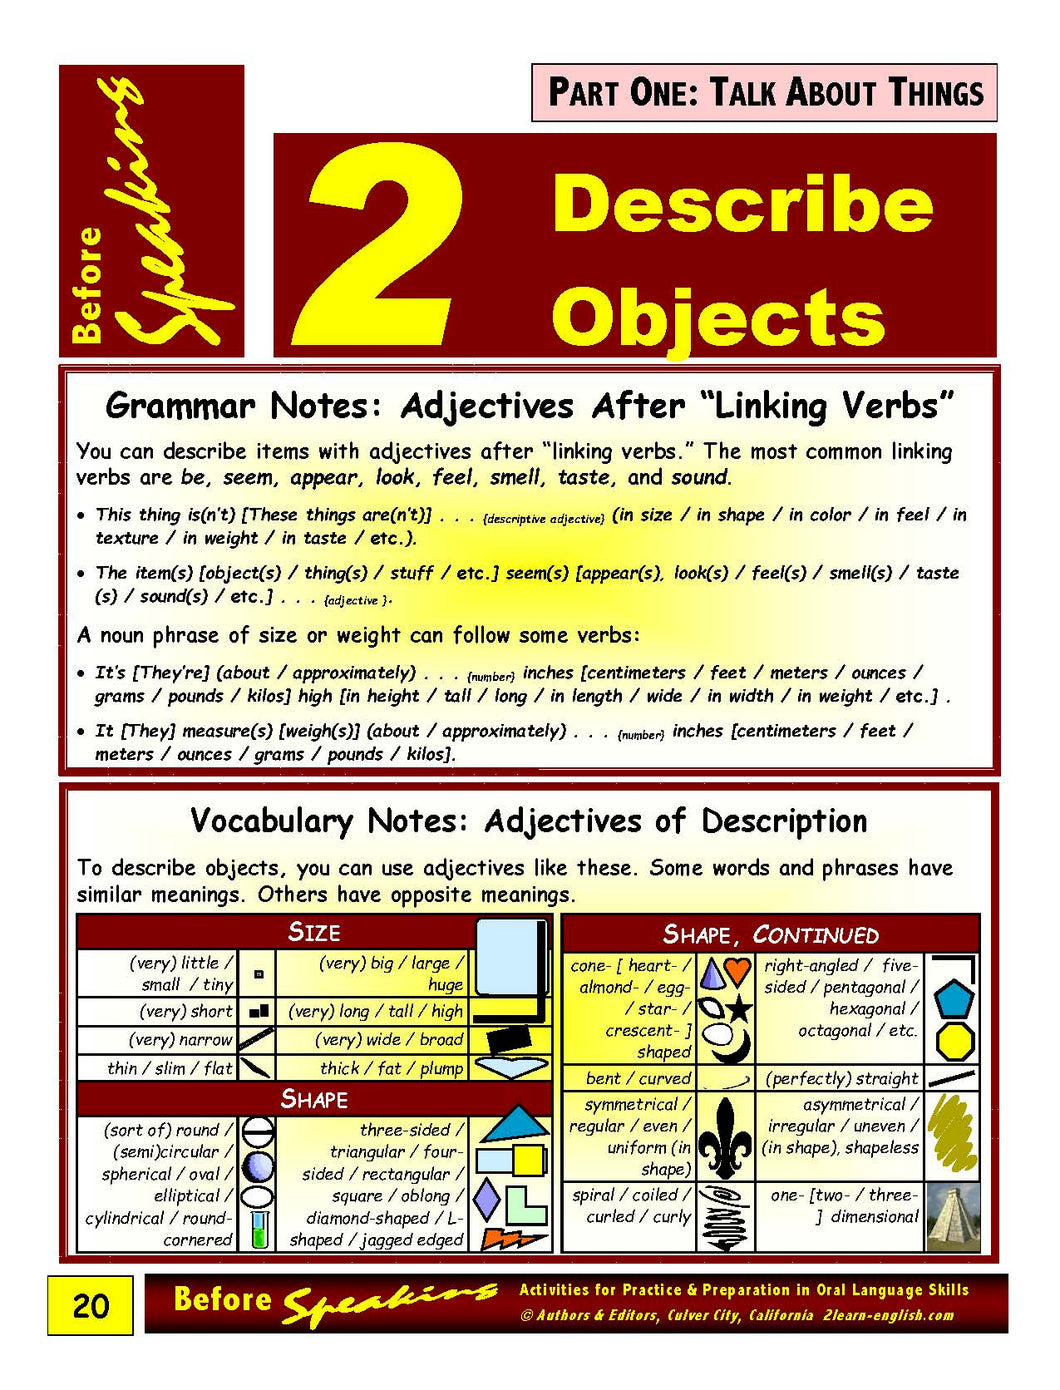 E-01.06 Talk About (Aspects of) Things: Describe Objects; Tell About Their Appearance,  Materials, Parts, & Purposes.